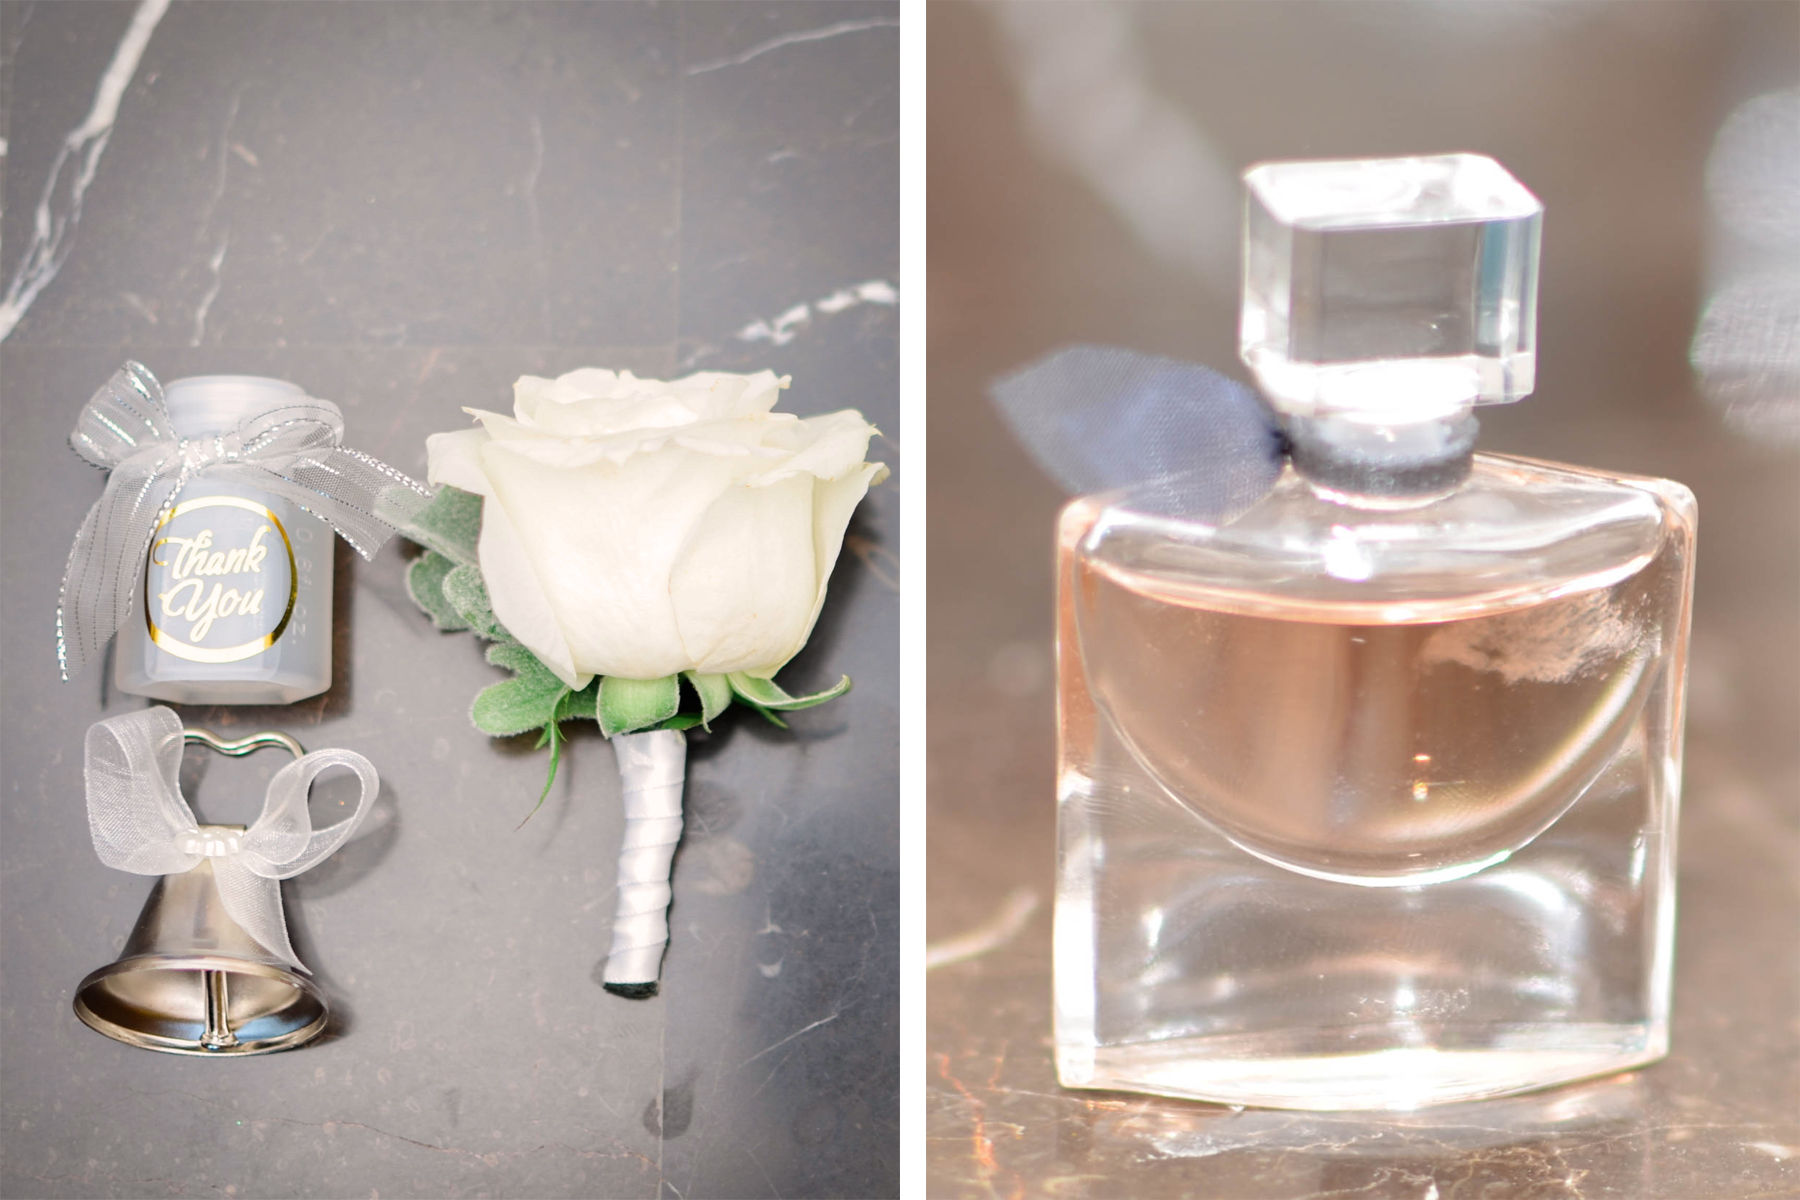 perfume and details.jpg